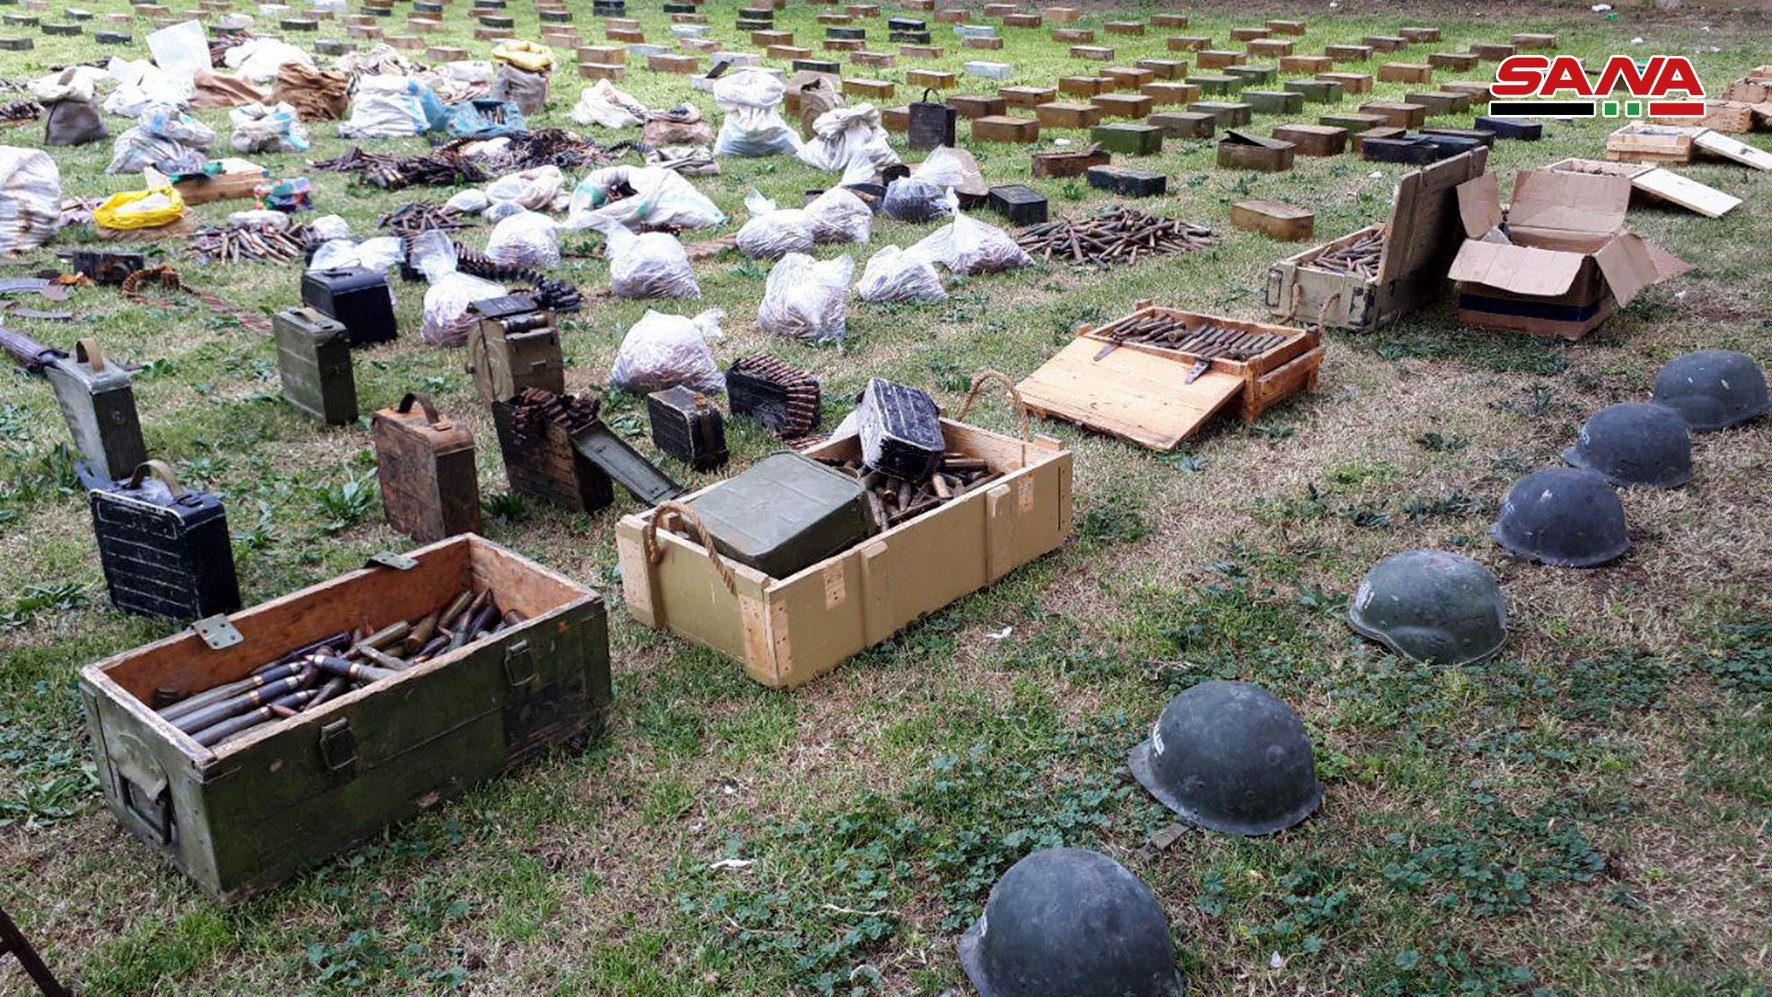 Syrian Army Uncovers Communication Systems, Surveillance Equipment And Weapons In Homs, Damascus And Daraa (Video, Photos)